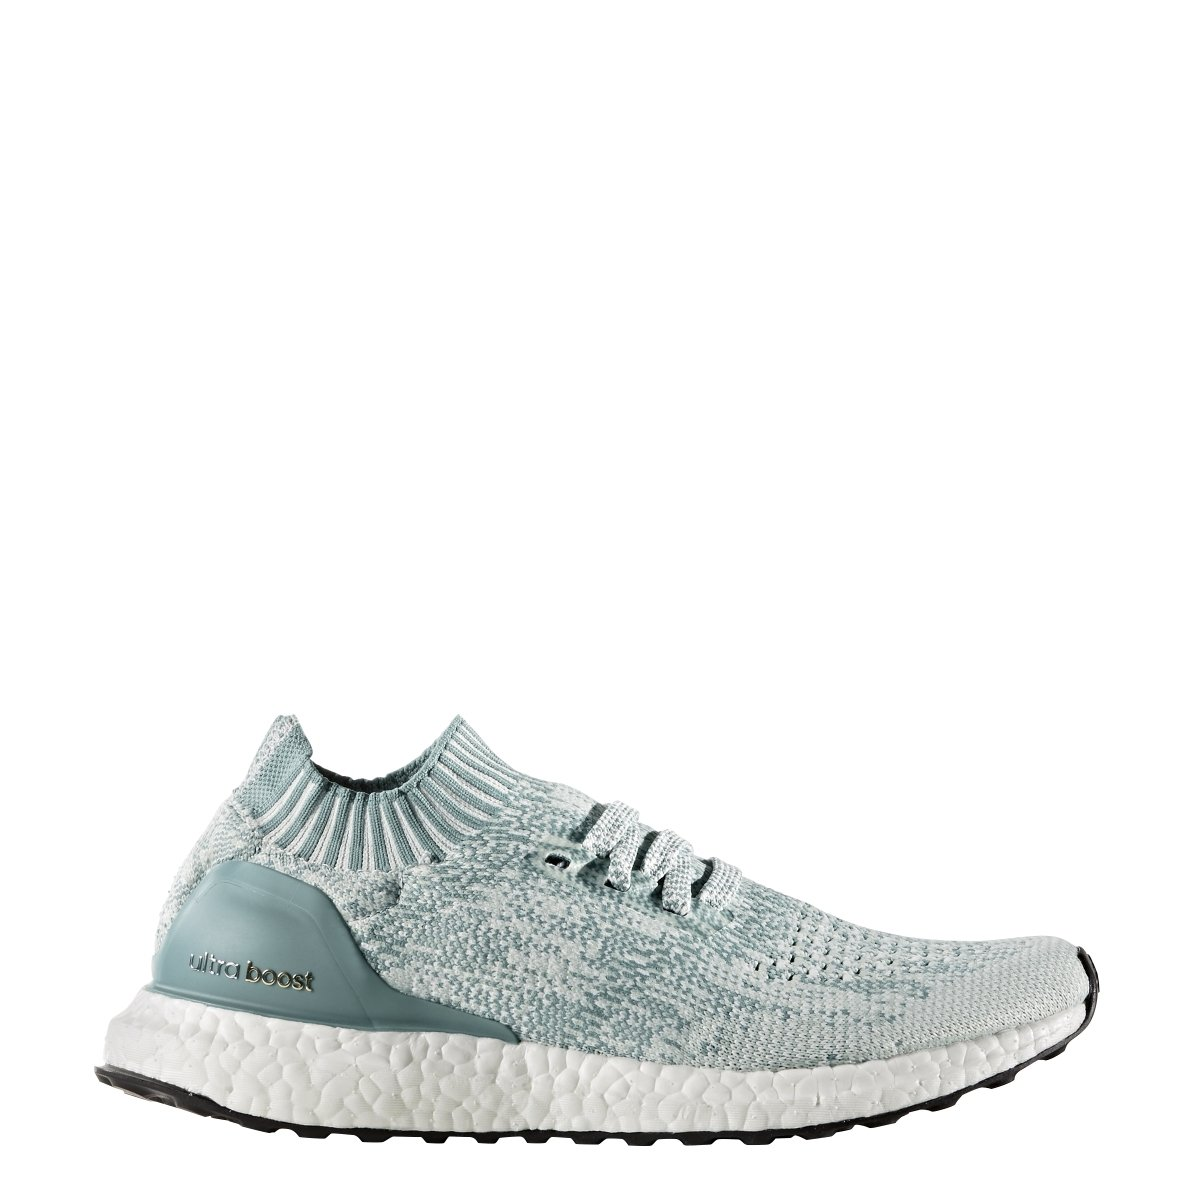 reputable site 7bfd2 85281 adidas Ultraboost Uncaged Shoe - Women's Running 12 Crystal White/Vapor  Steel/Vapor Green